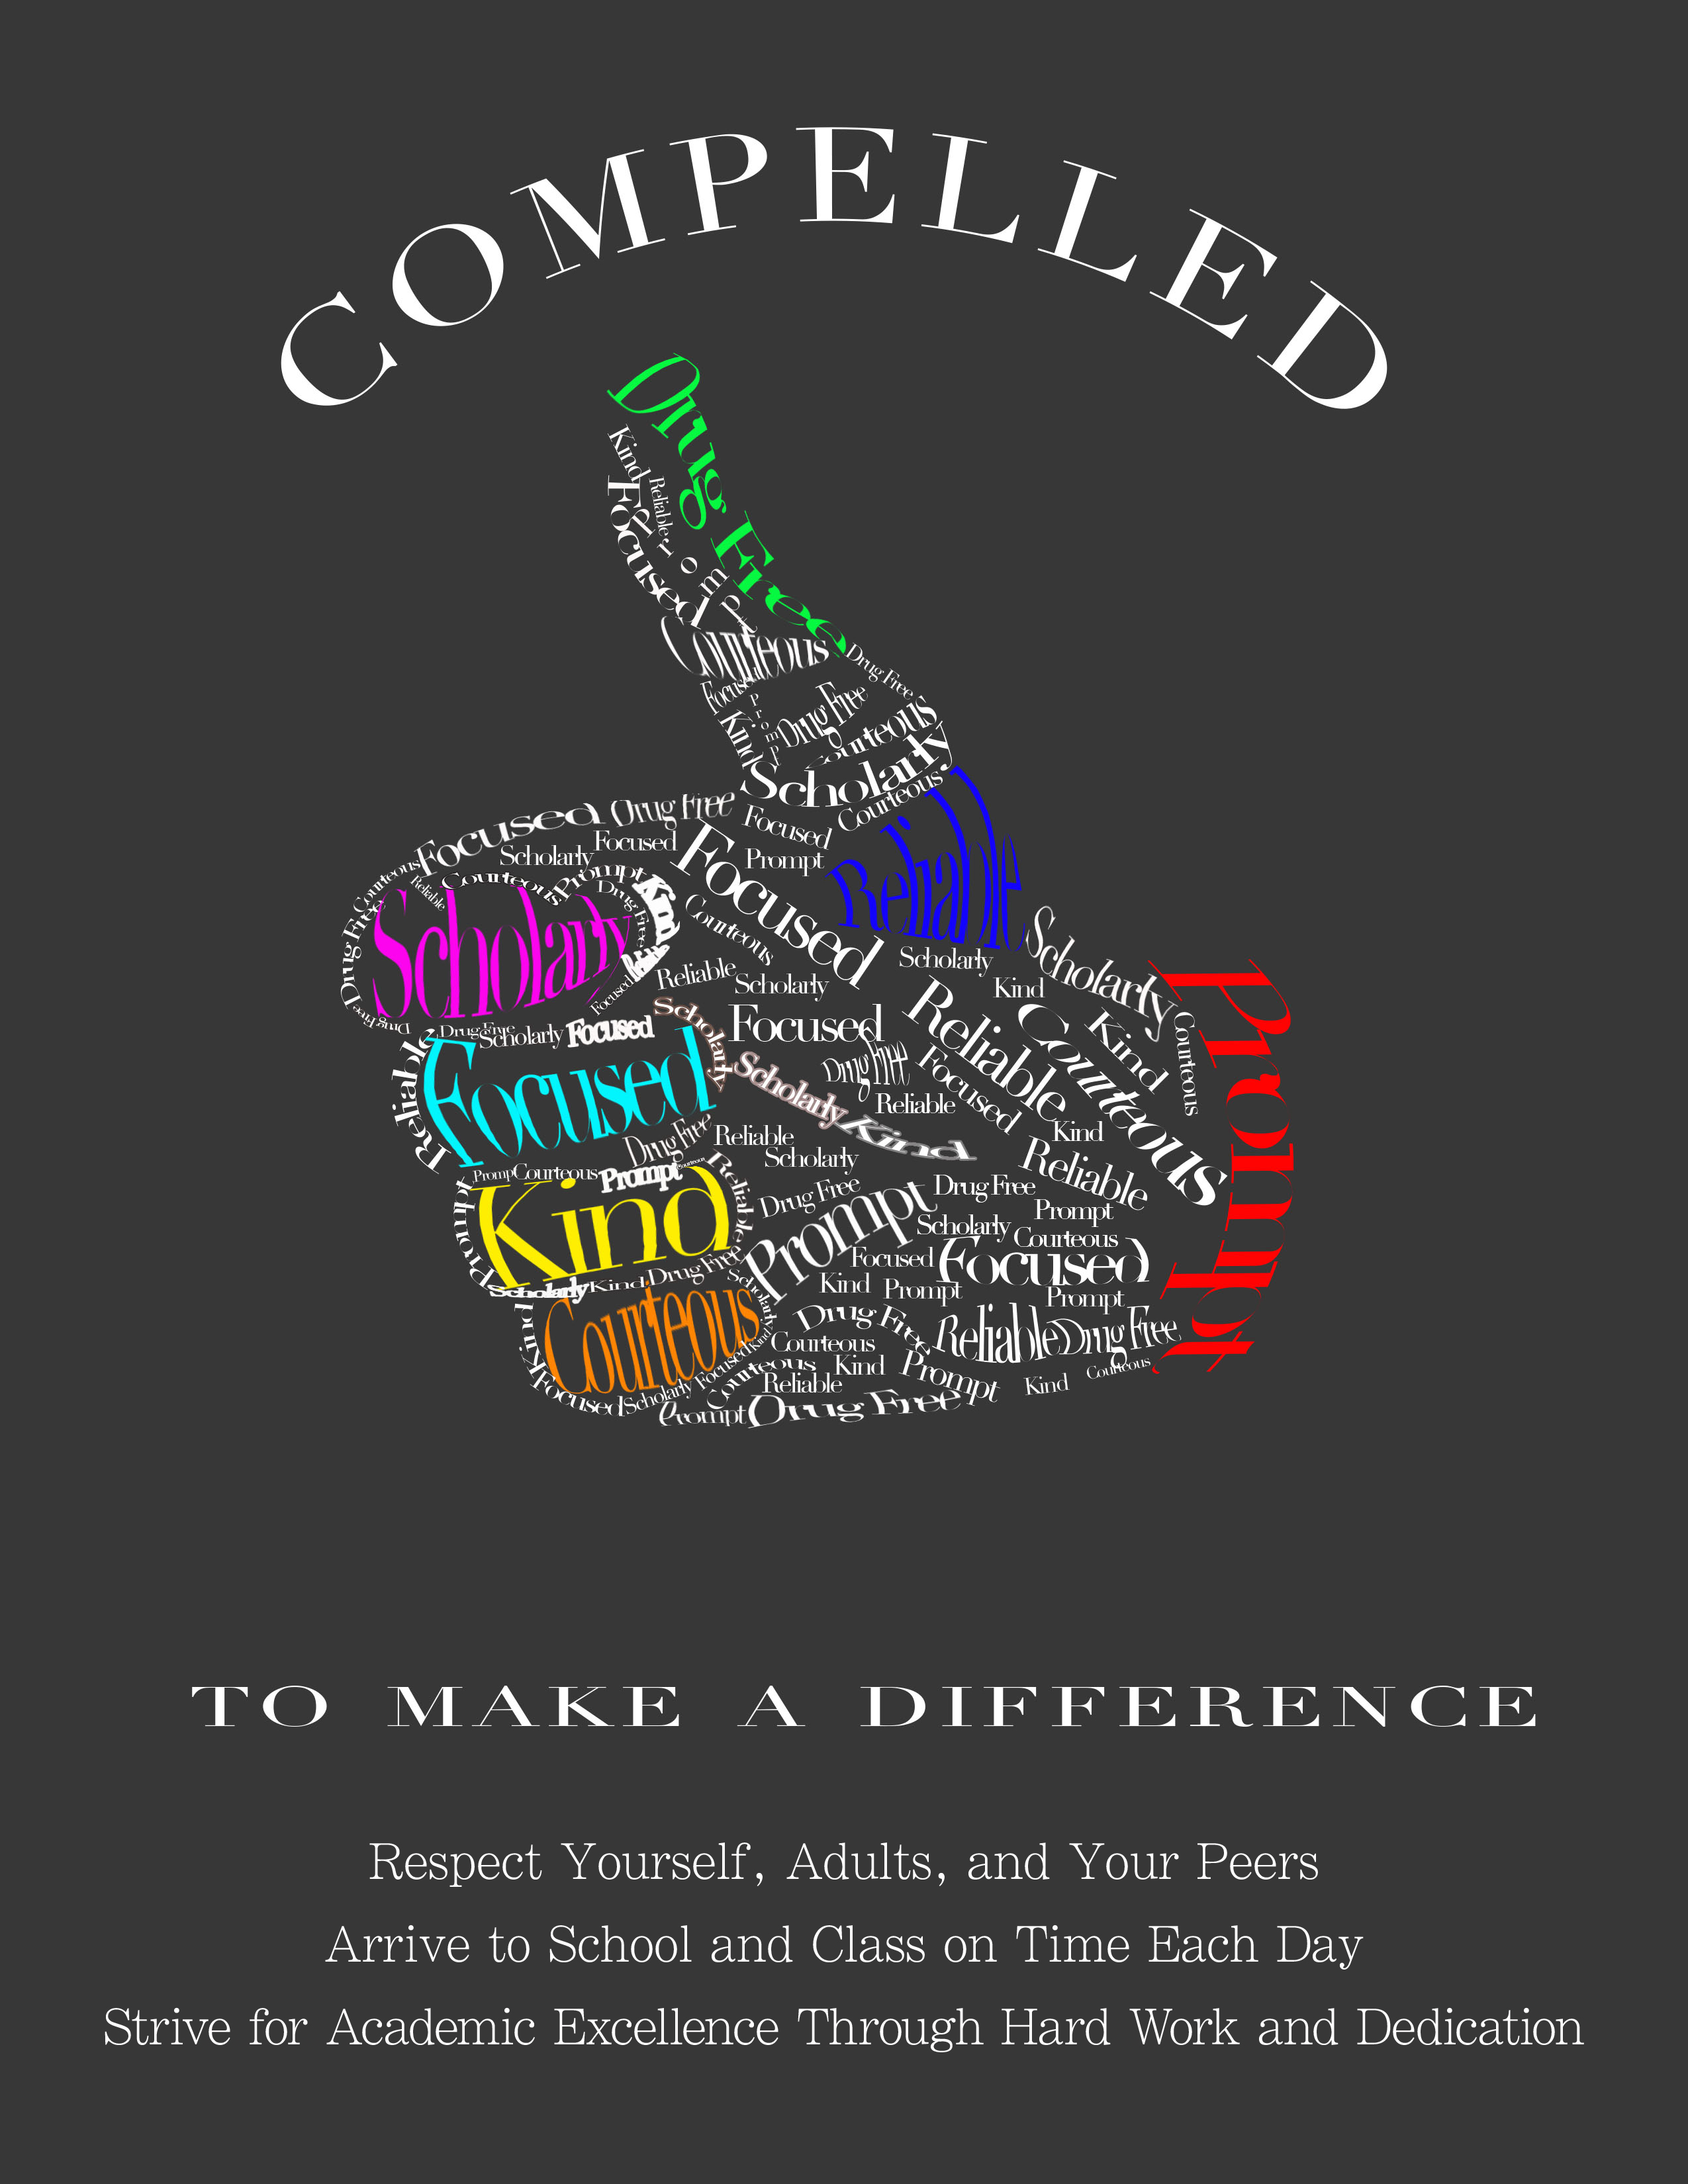 At Washington Prep. H.S., We Are Compelled To Make A Difference